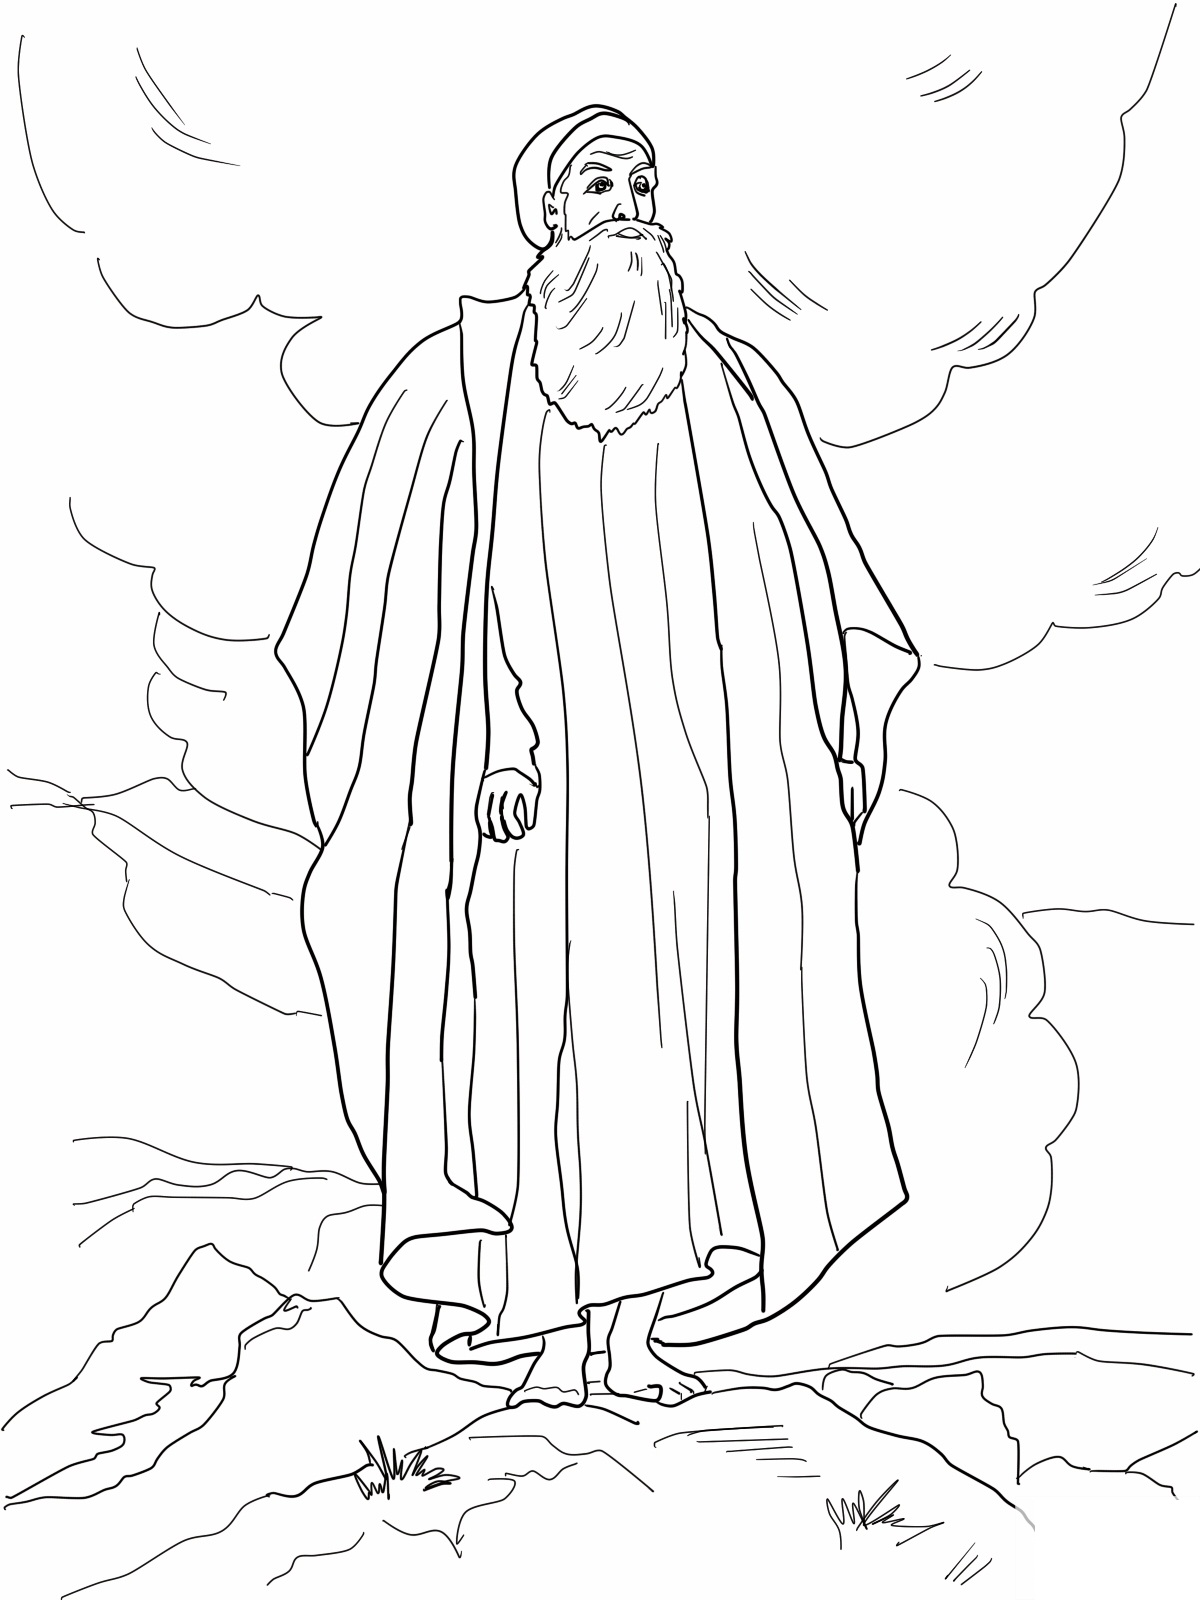 moses in bulrushes coloring pages - photo#21